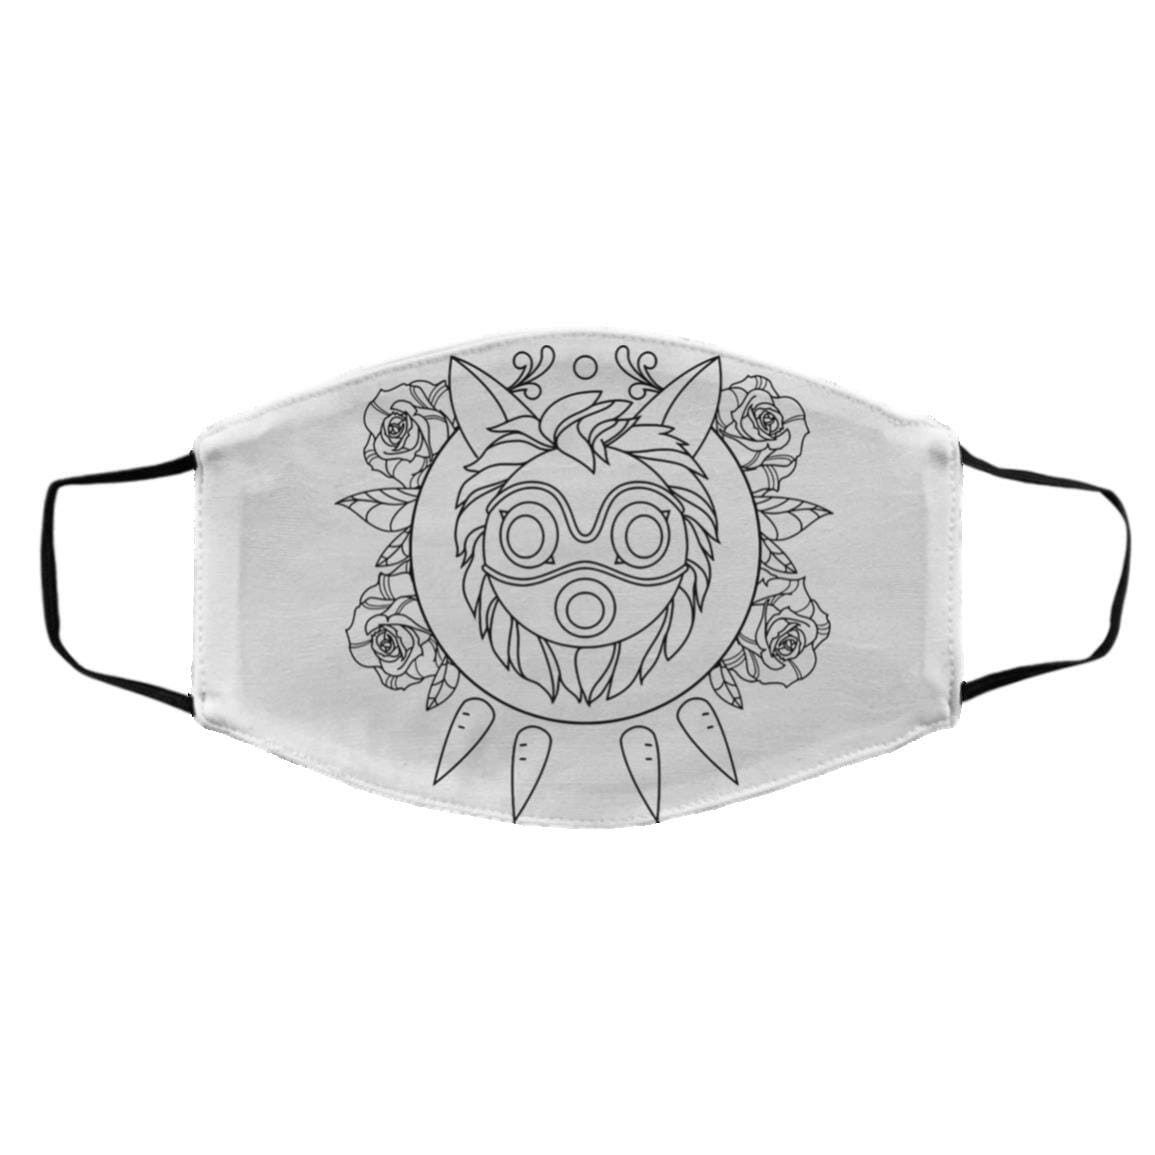 Princess Mononoke Mask in Black and White Face Mask